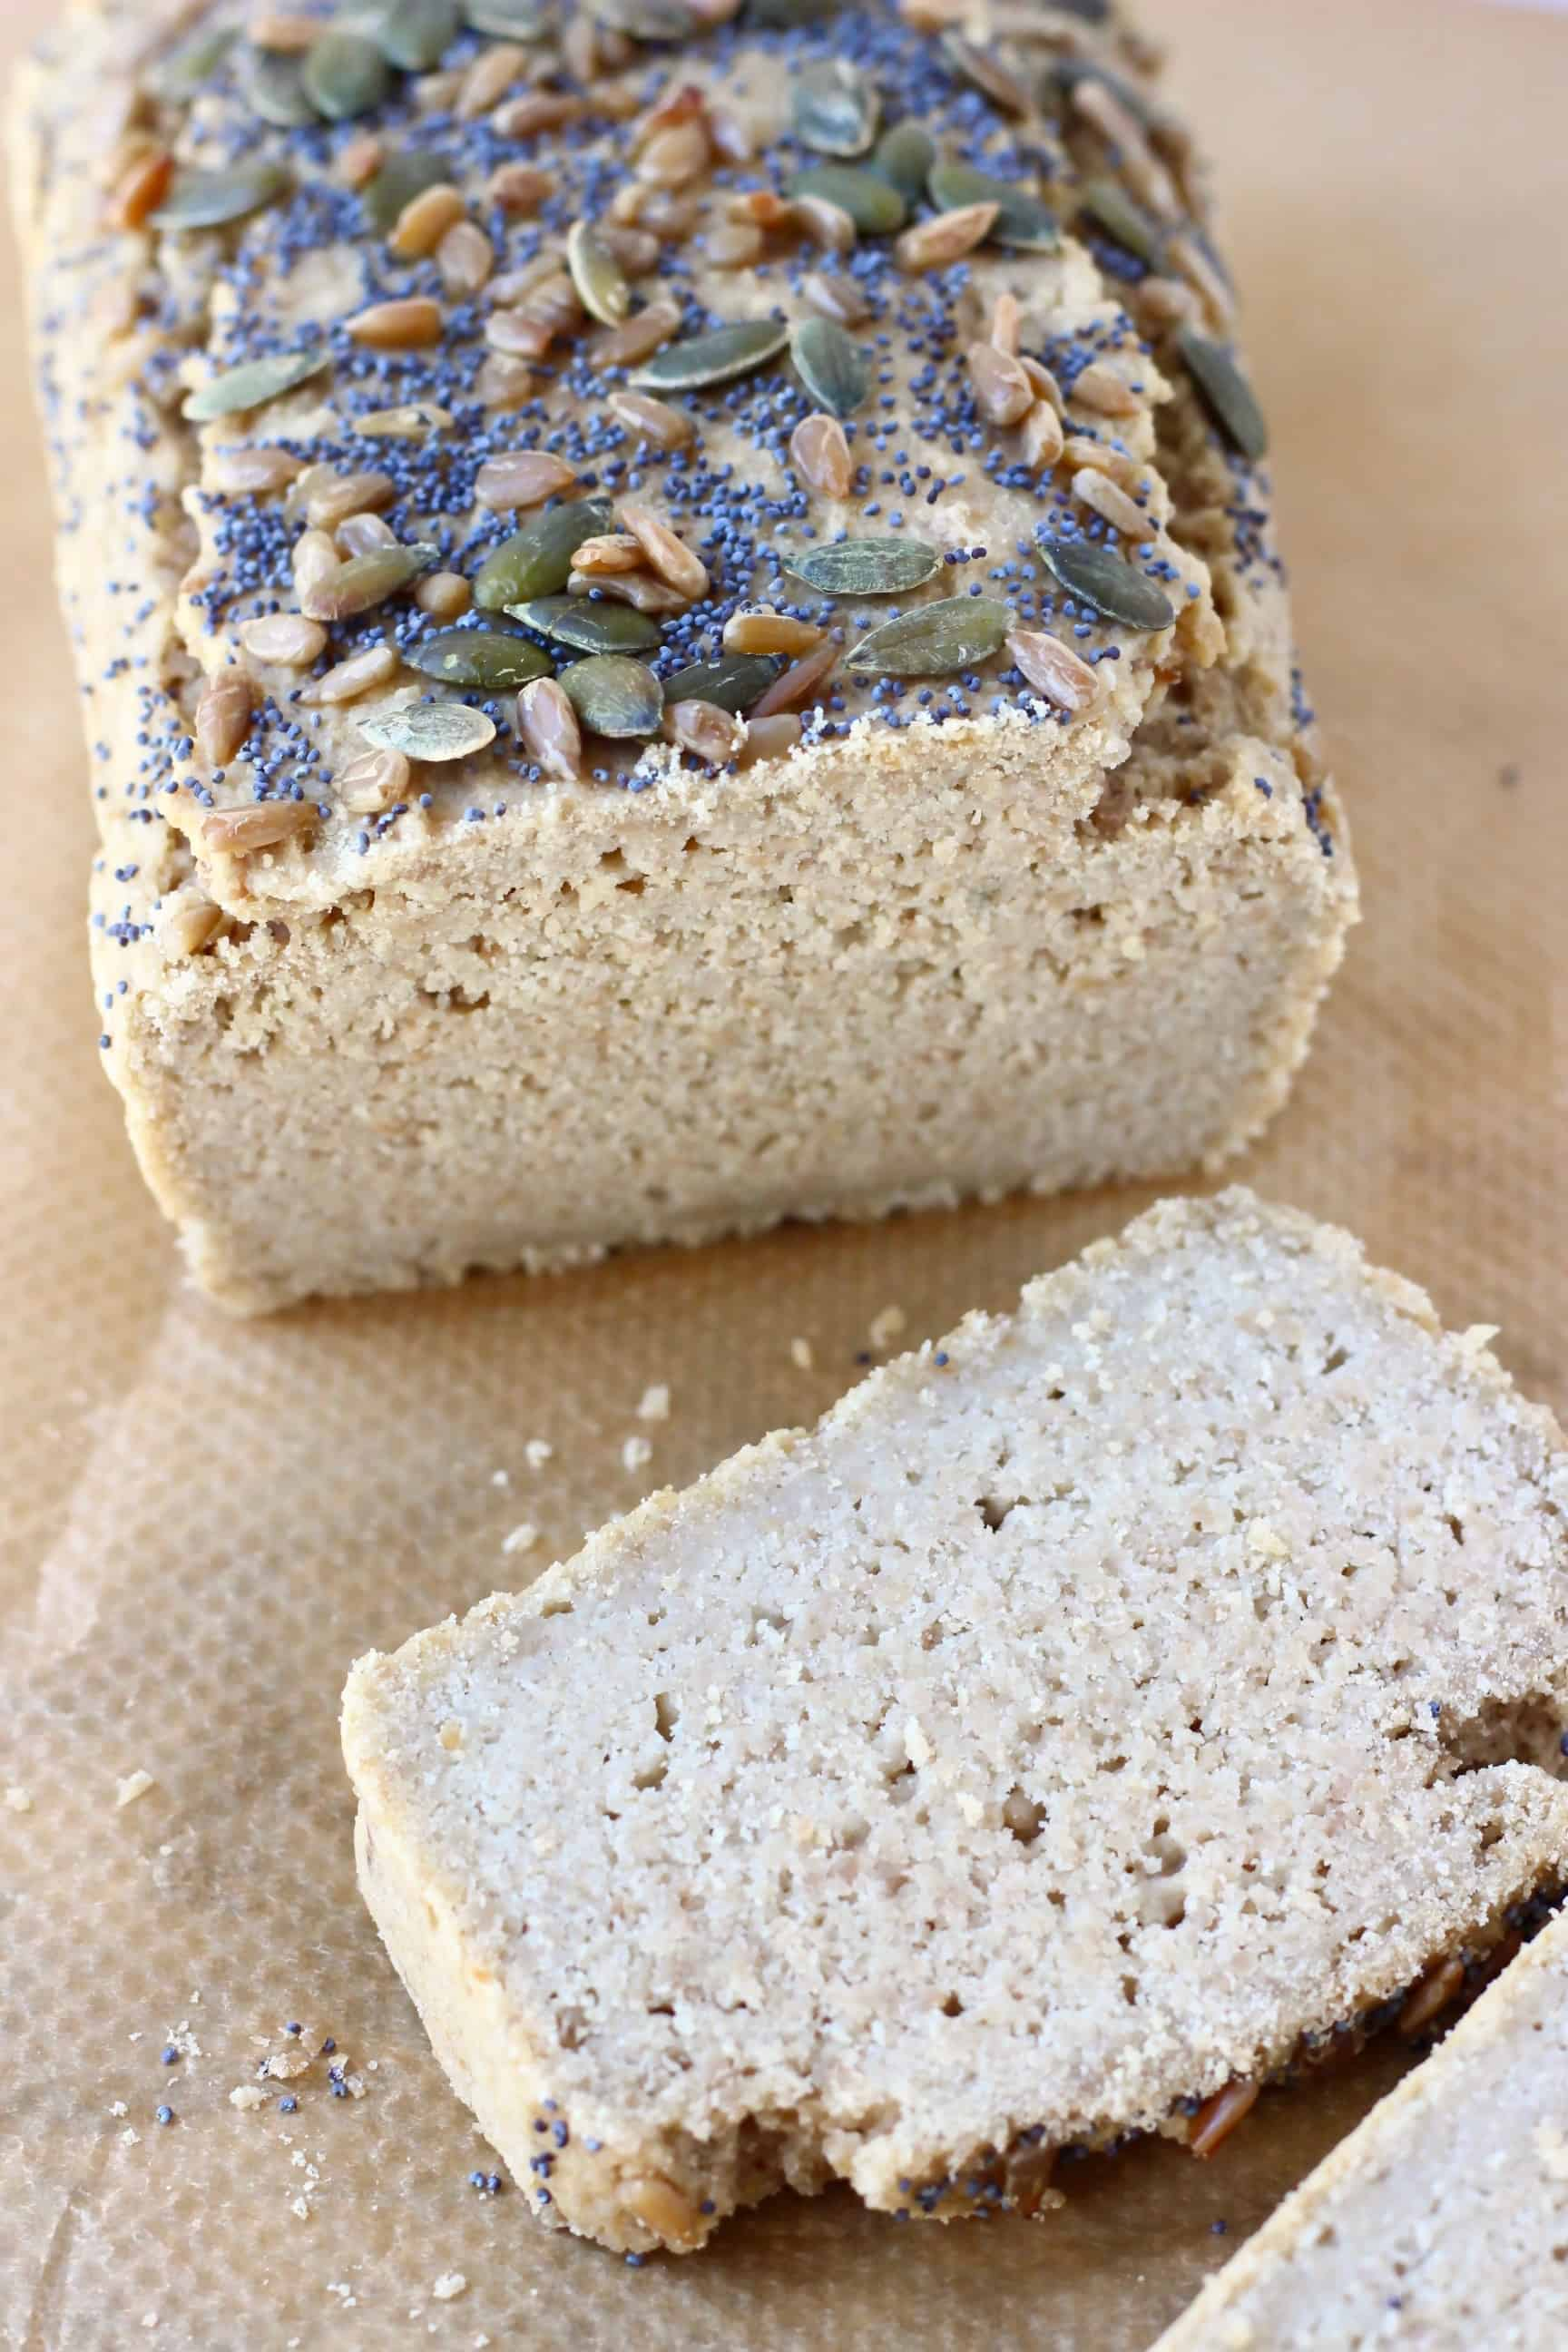 A loaf of sunflower seed bread topped with mixed seeds with two slices of bread next to it